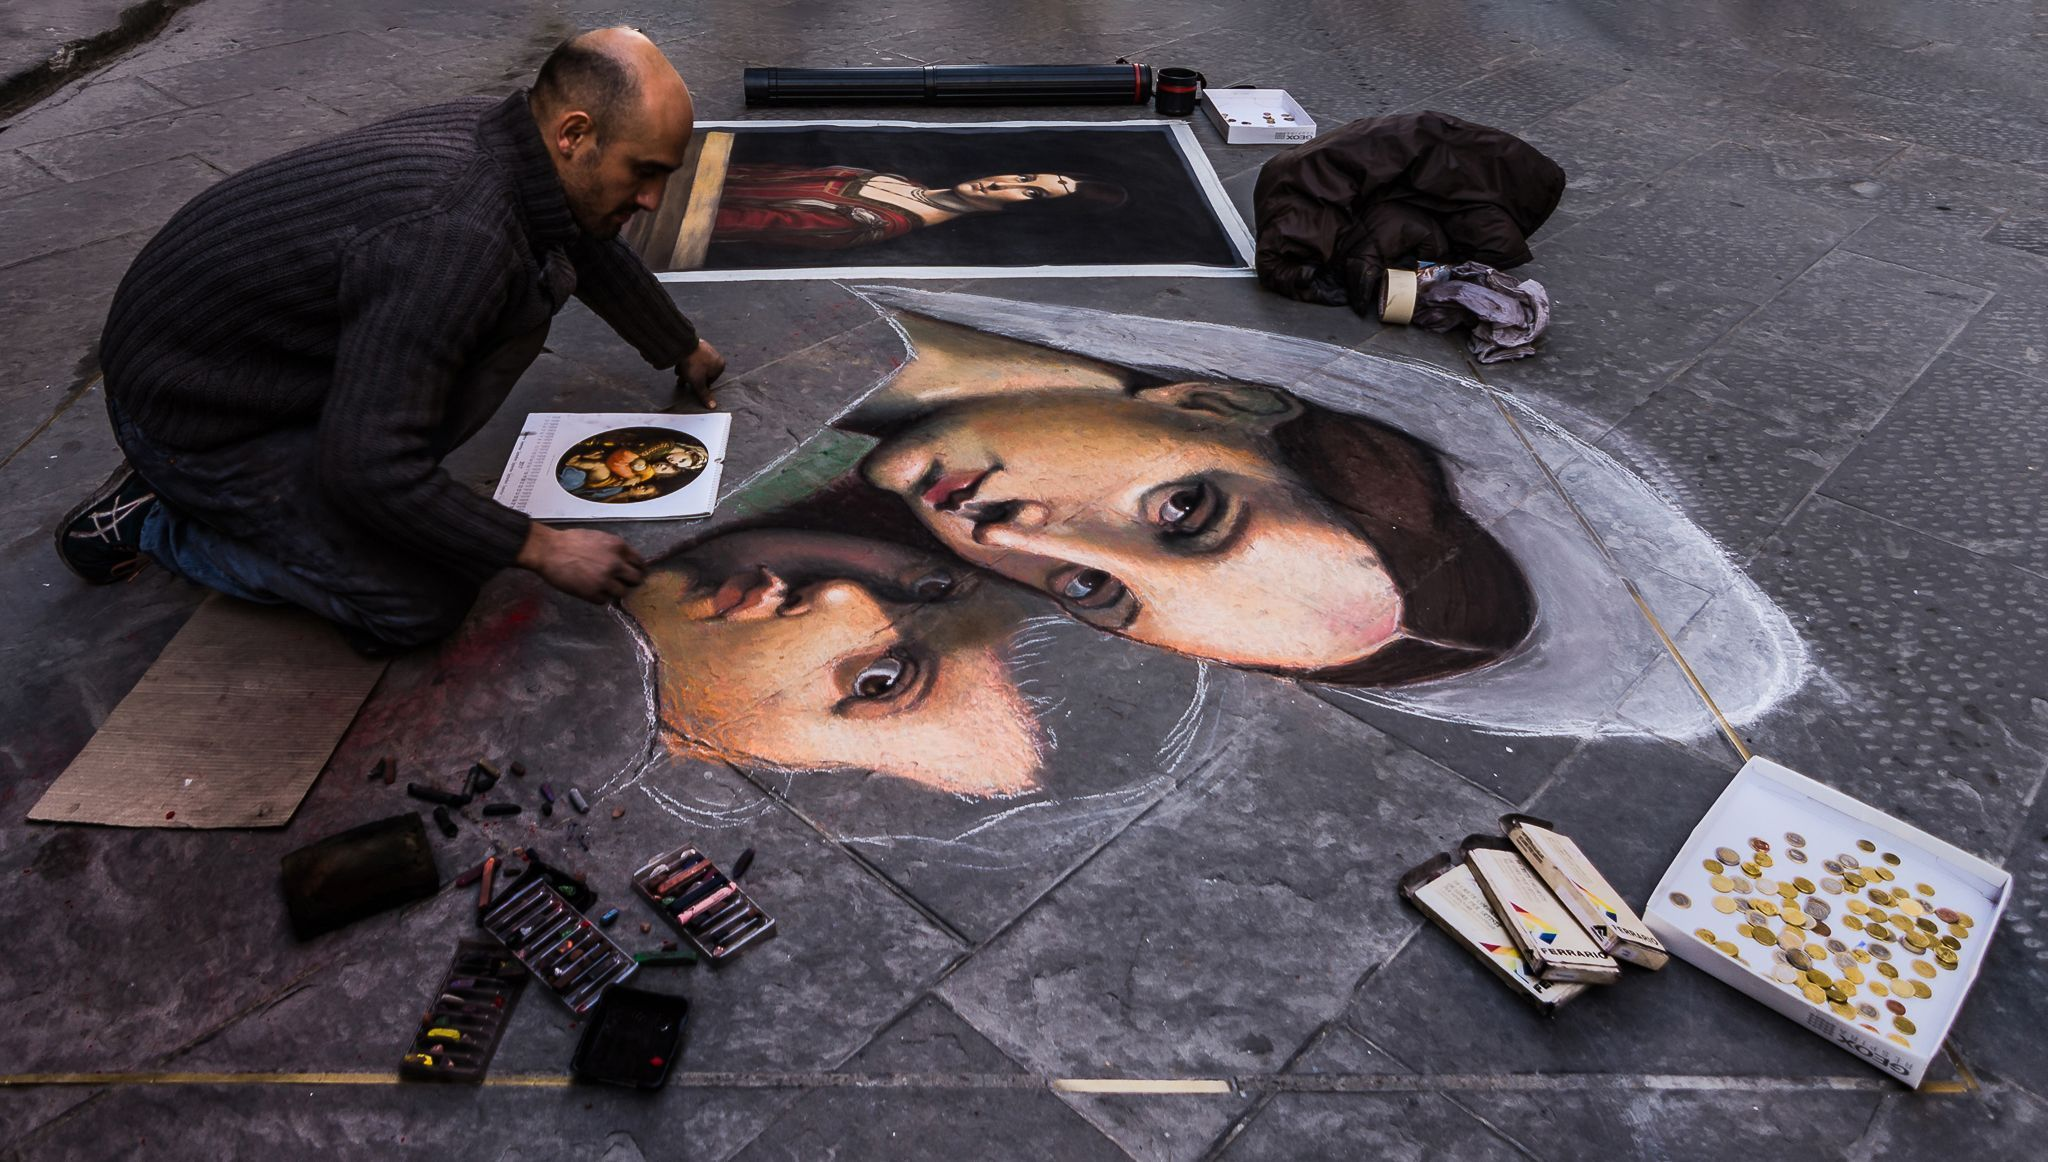 In Florence, Italy, a chalk artist makes the sidewalk his canvas. He creates his portraits near the Uffizi Museum, famous for housing works by Michelangelo, da Vinci, and Botticelli.